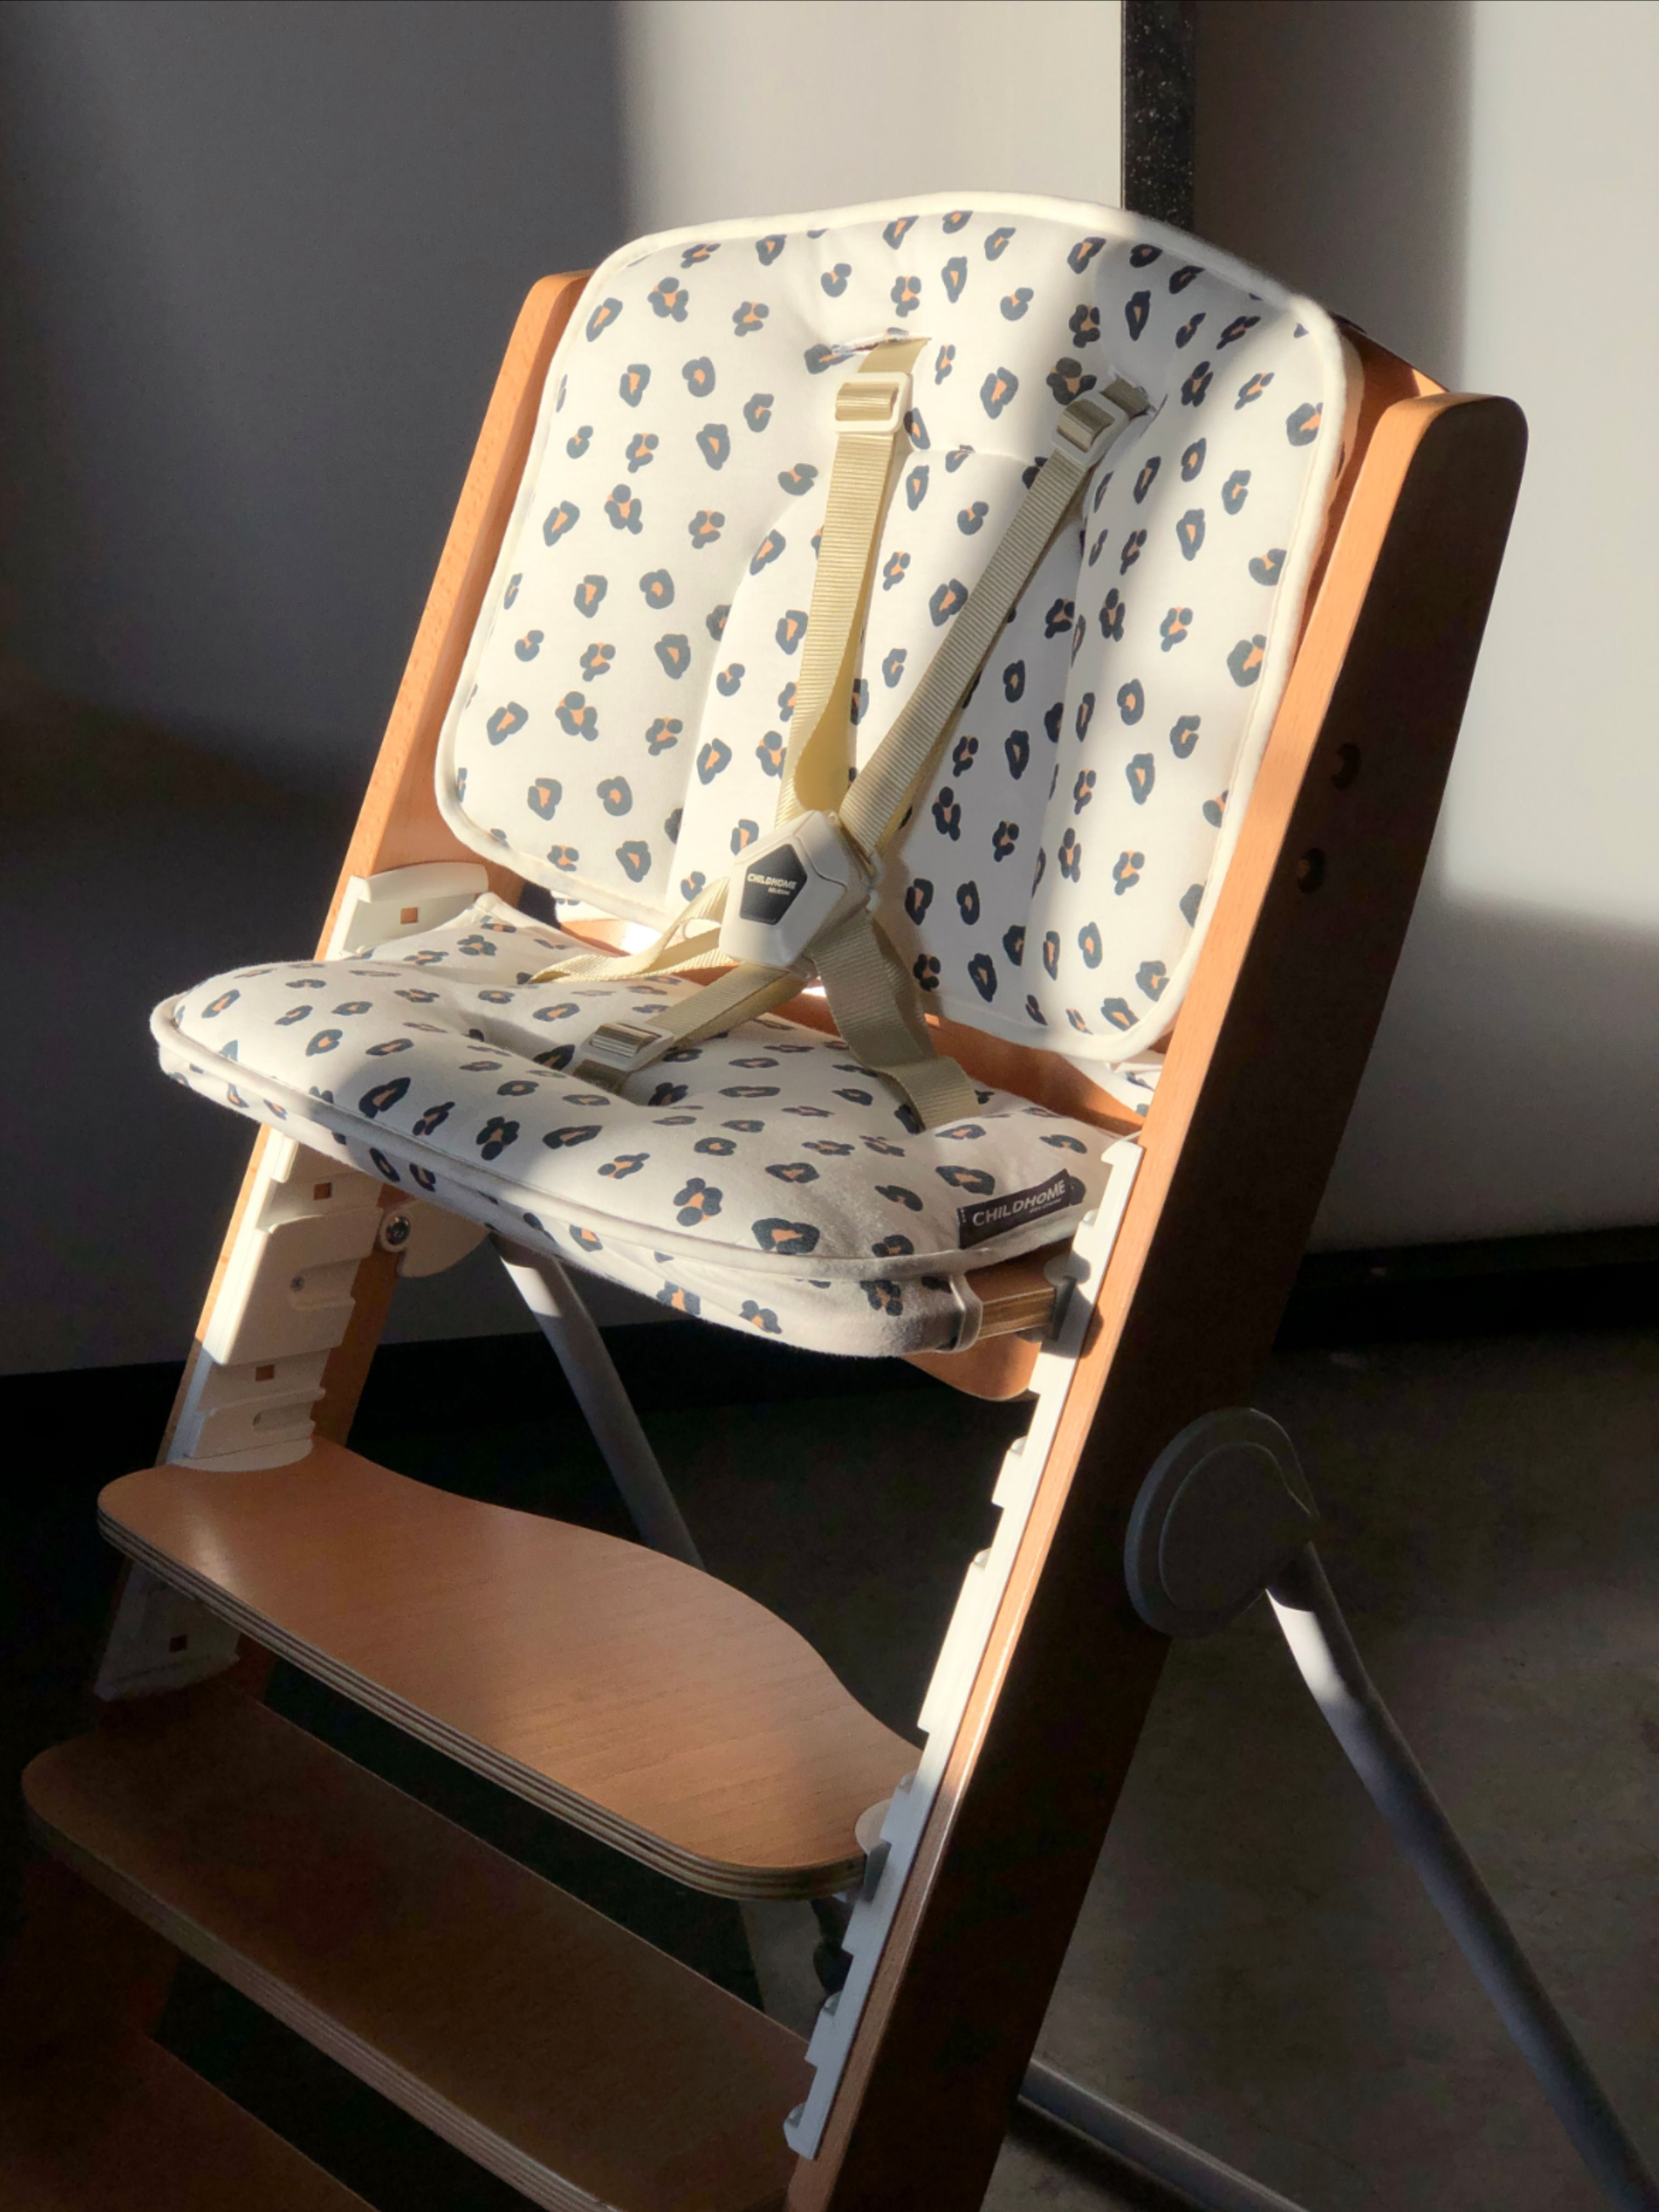 The Kitgrow 4in1 high chair will last a lifetime!☀ With